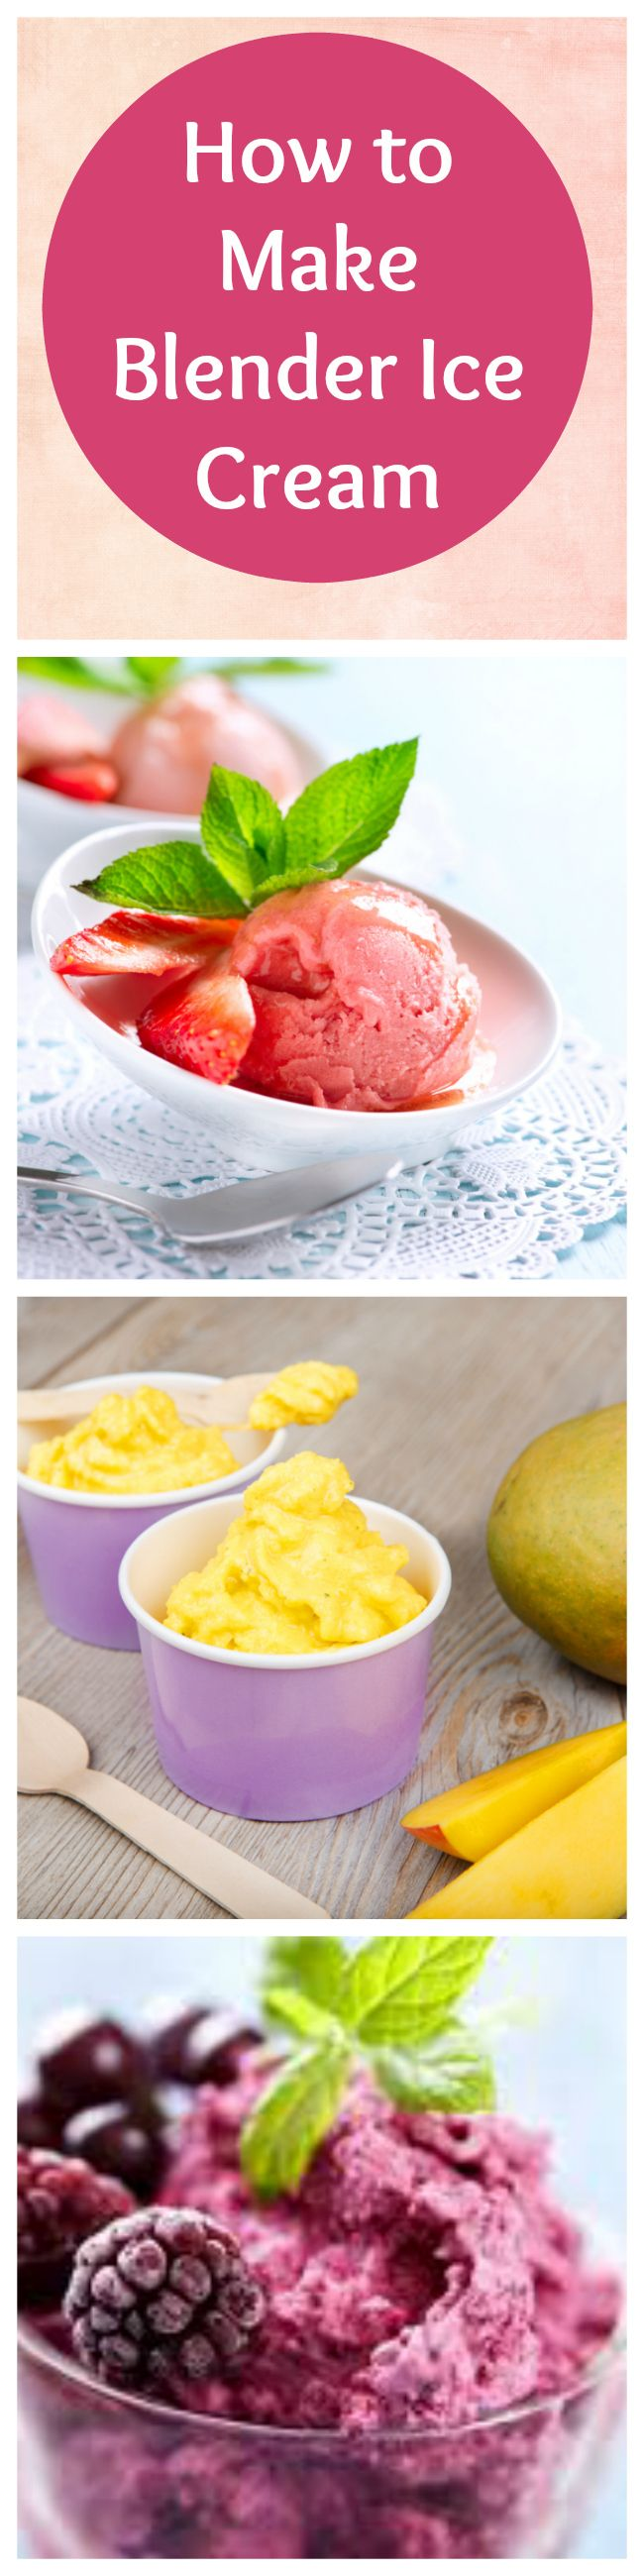 How to Make Blender Ice Cream ~ Love ice cream, but hate all the sugar? You can actually make ice cream in your blender using healthier ingredients! It's simple and this post offers lots of great flavor combinations! ~ from www.allnutribulletrecipes.com